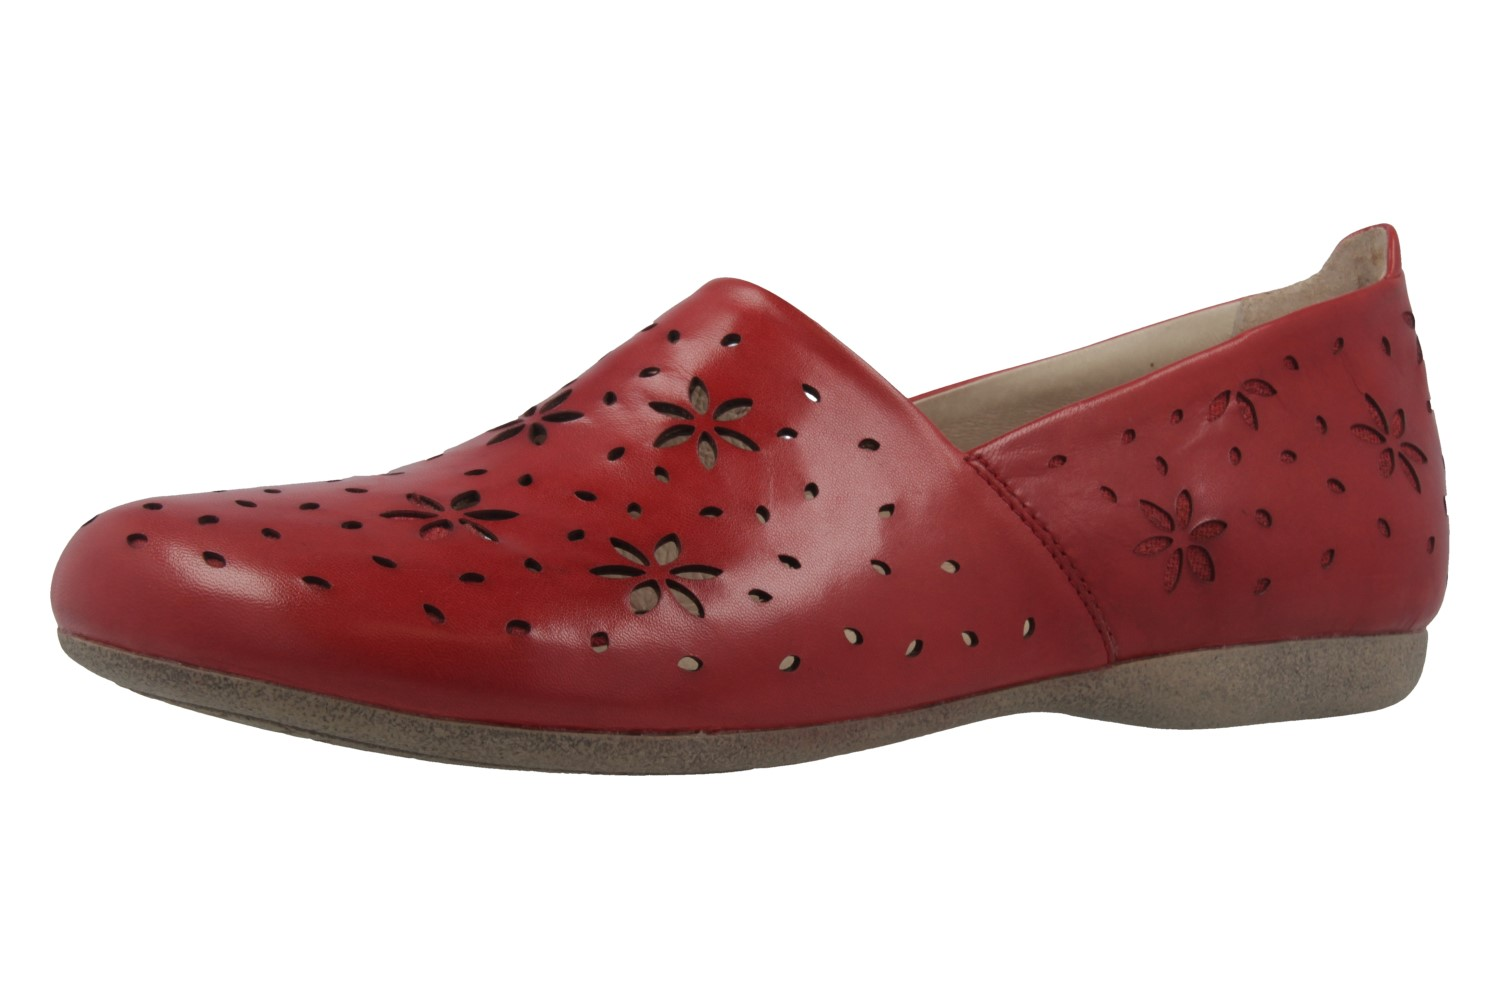 Josef Seibel Slipper In Ubergrossen Rot 87231 971 460 Grosse